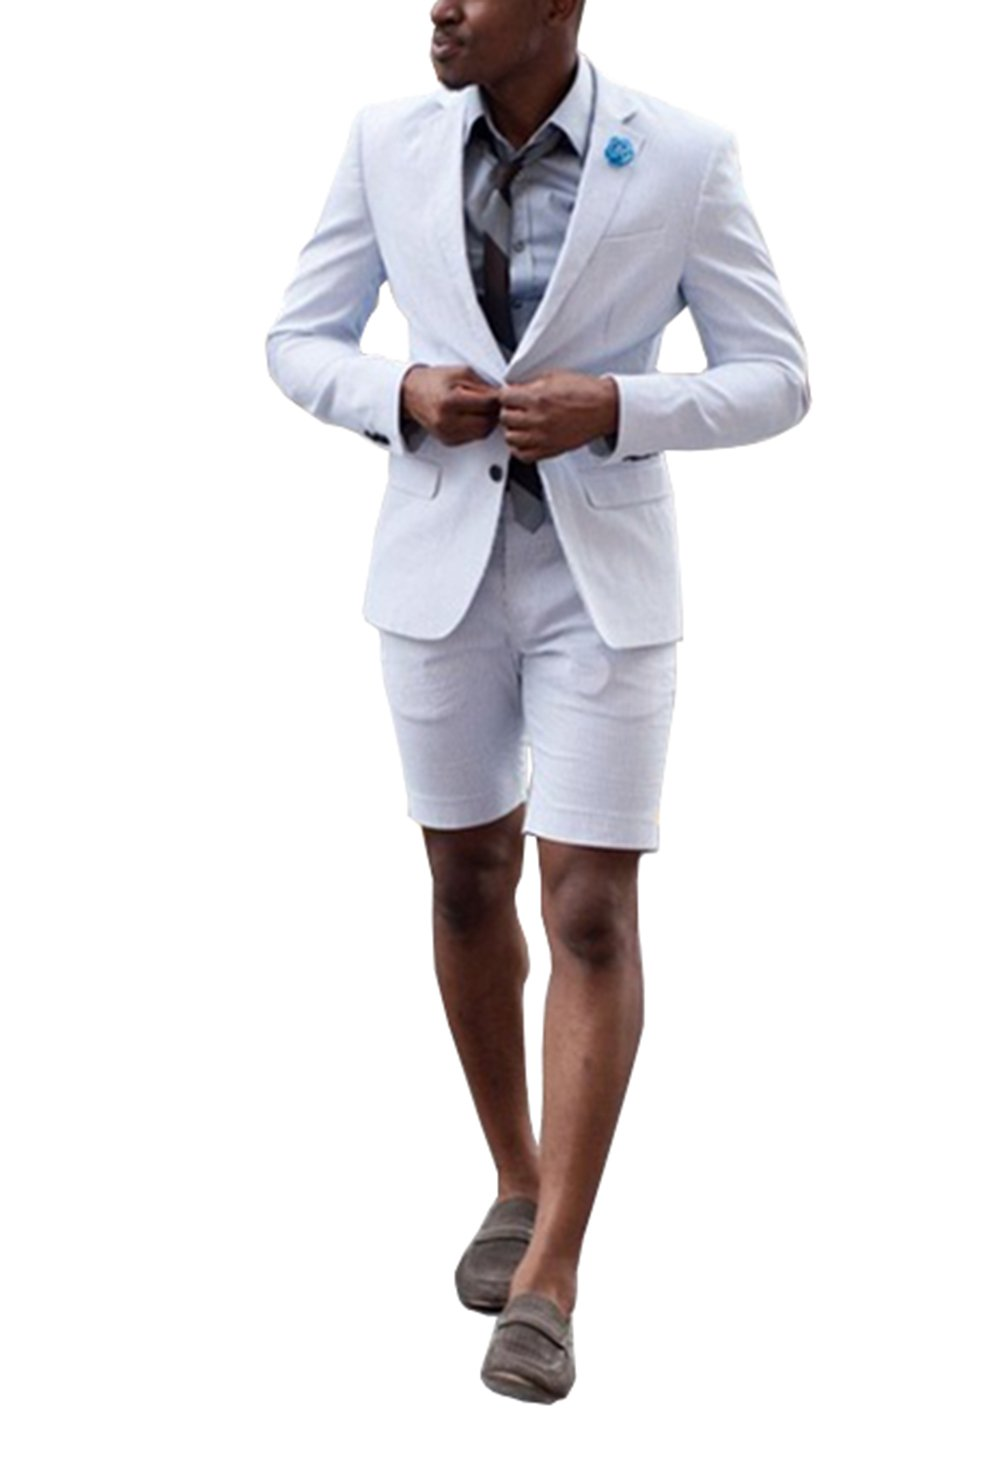 Fitty Lell Men Suit 2 Piece Groom Tuxedo with Short Pants Fashion Business Mens Summer Wear Suits Sets(42 Regular,White)